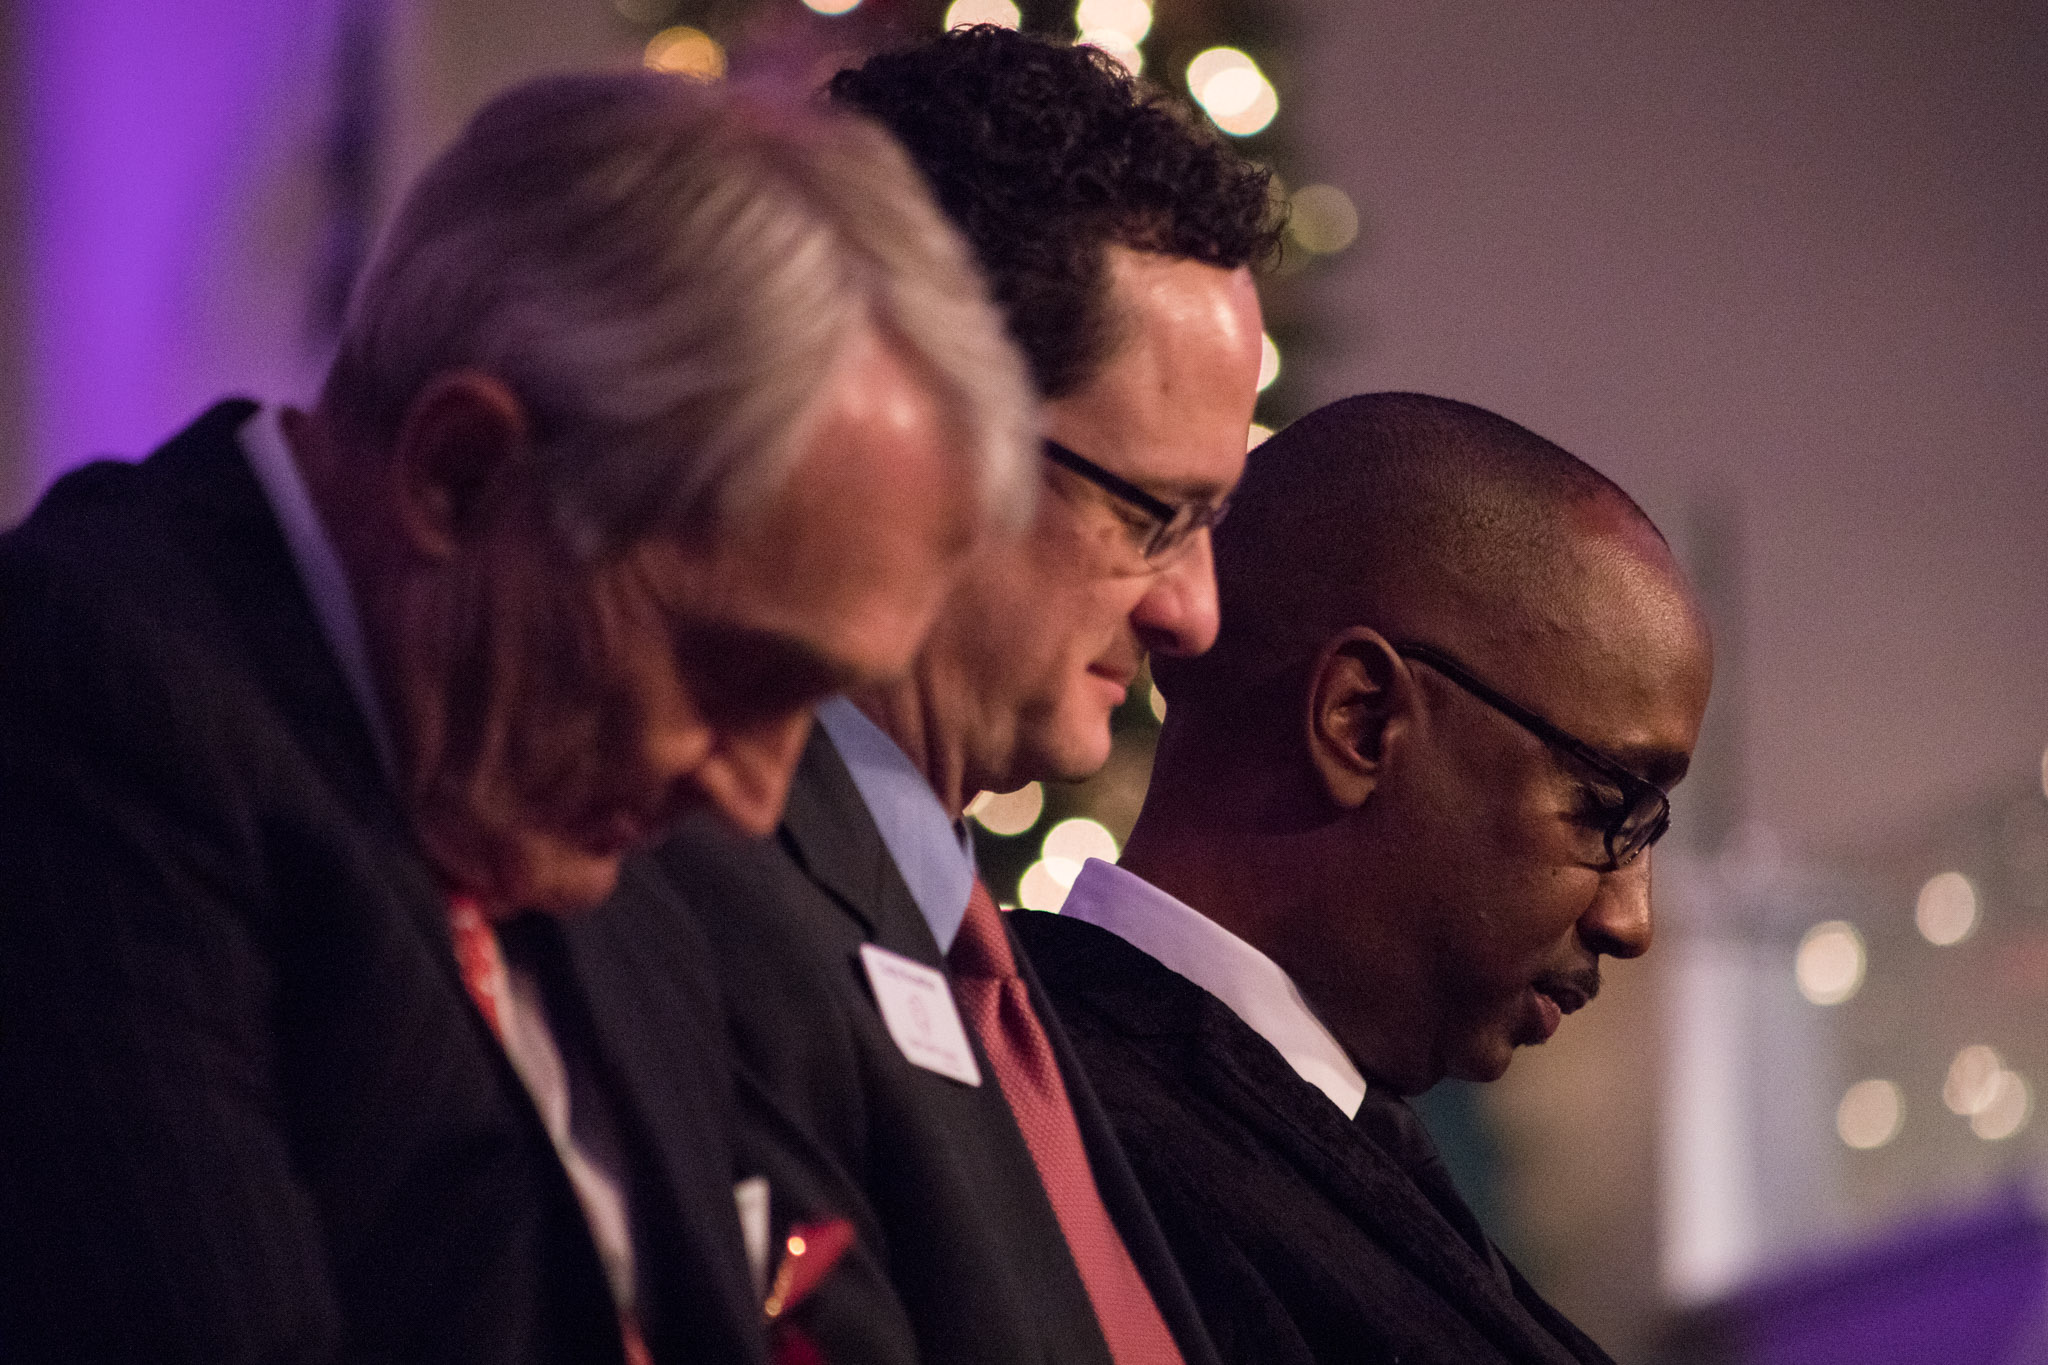 (From left) Baptist Health Foundation of San Antonio Chairman of the Board Toby Summers, Baptist Health Foundation of San Antonio President and CEO Cody Knowlton, and Master of Ceremonies Marvin Hurst bow their heads in prayer before the awards ceremony.